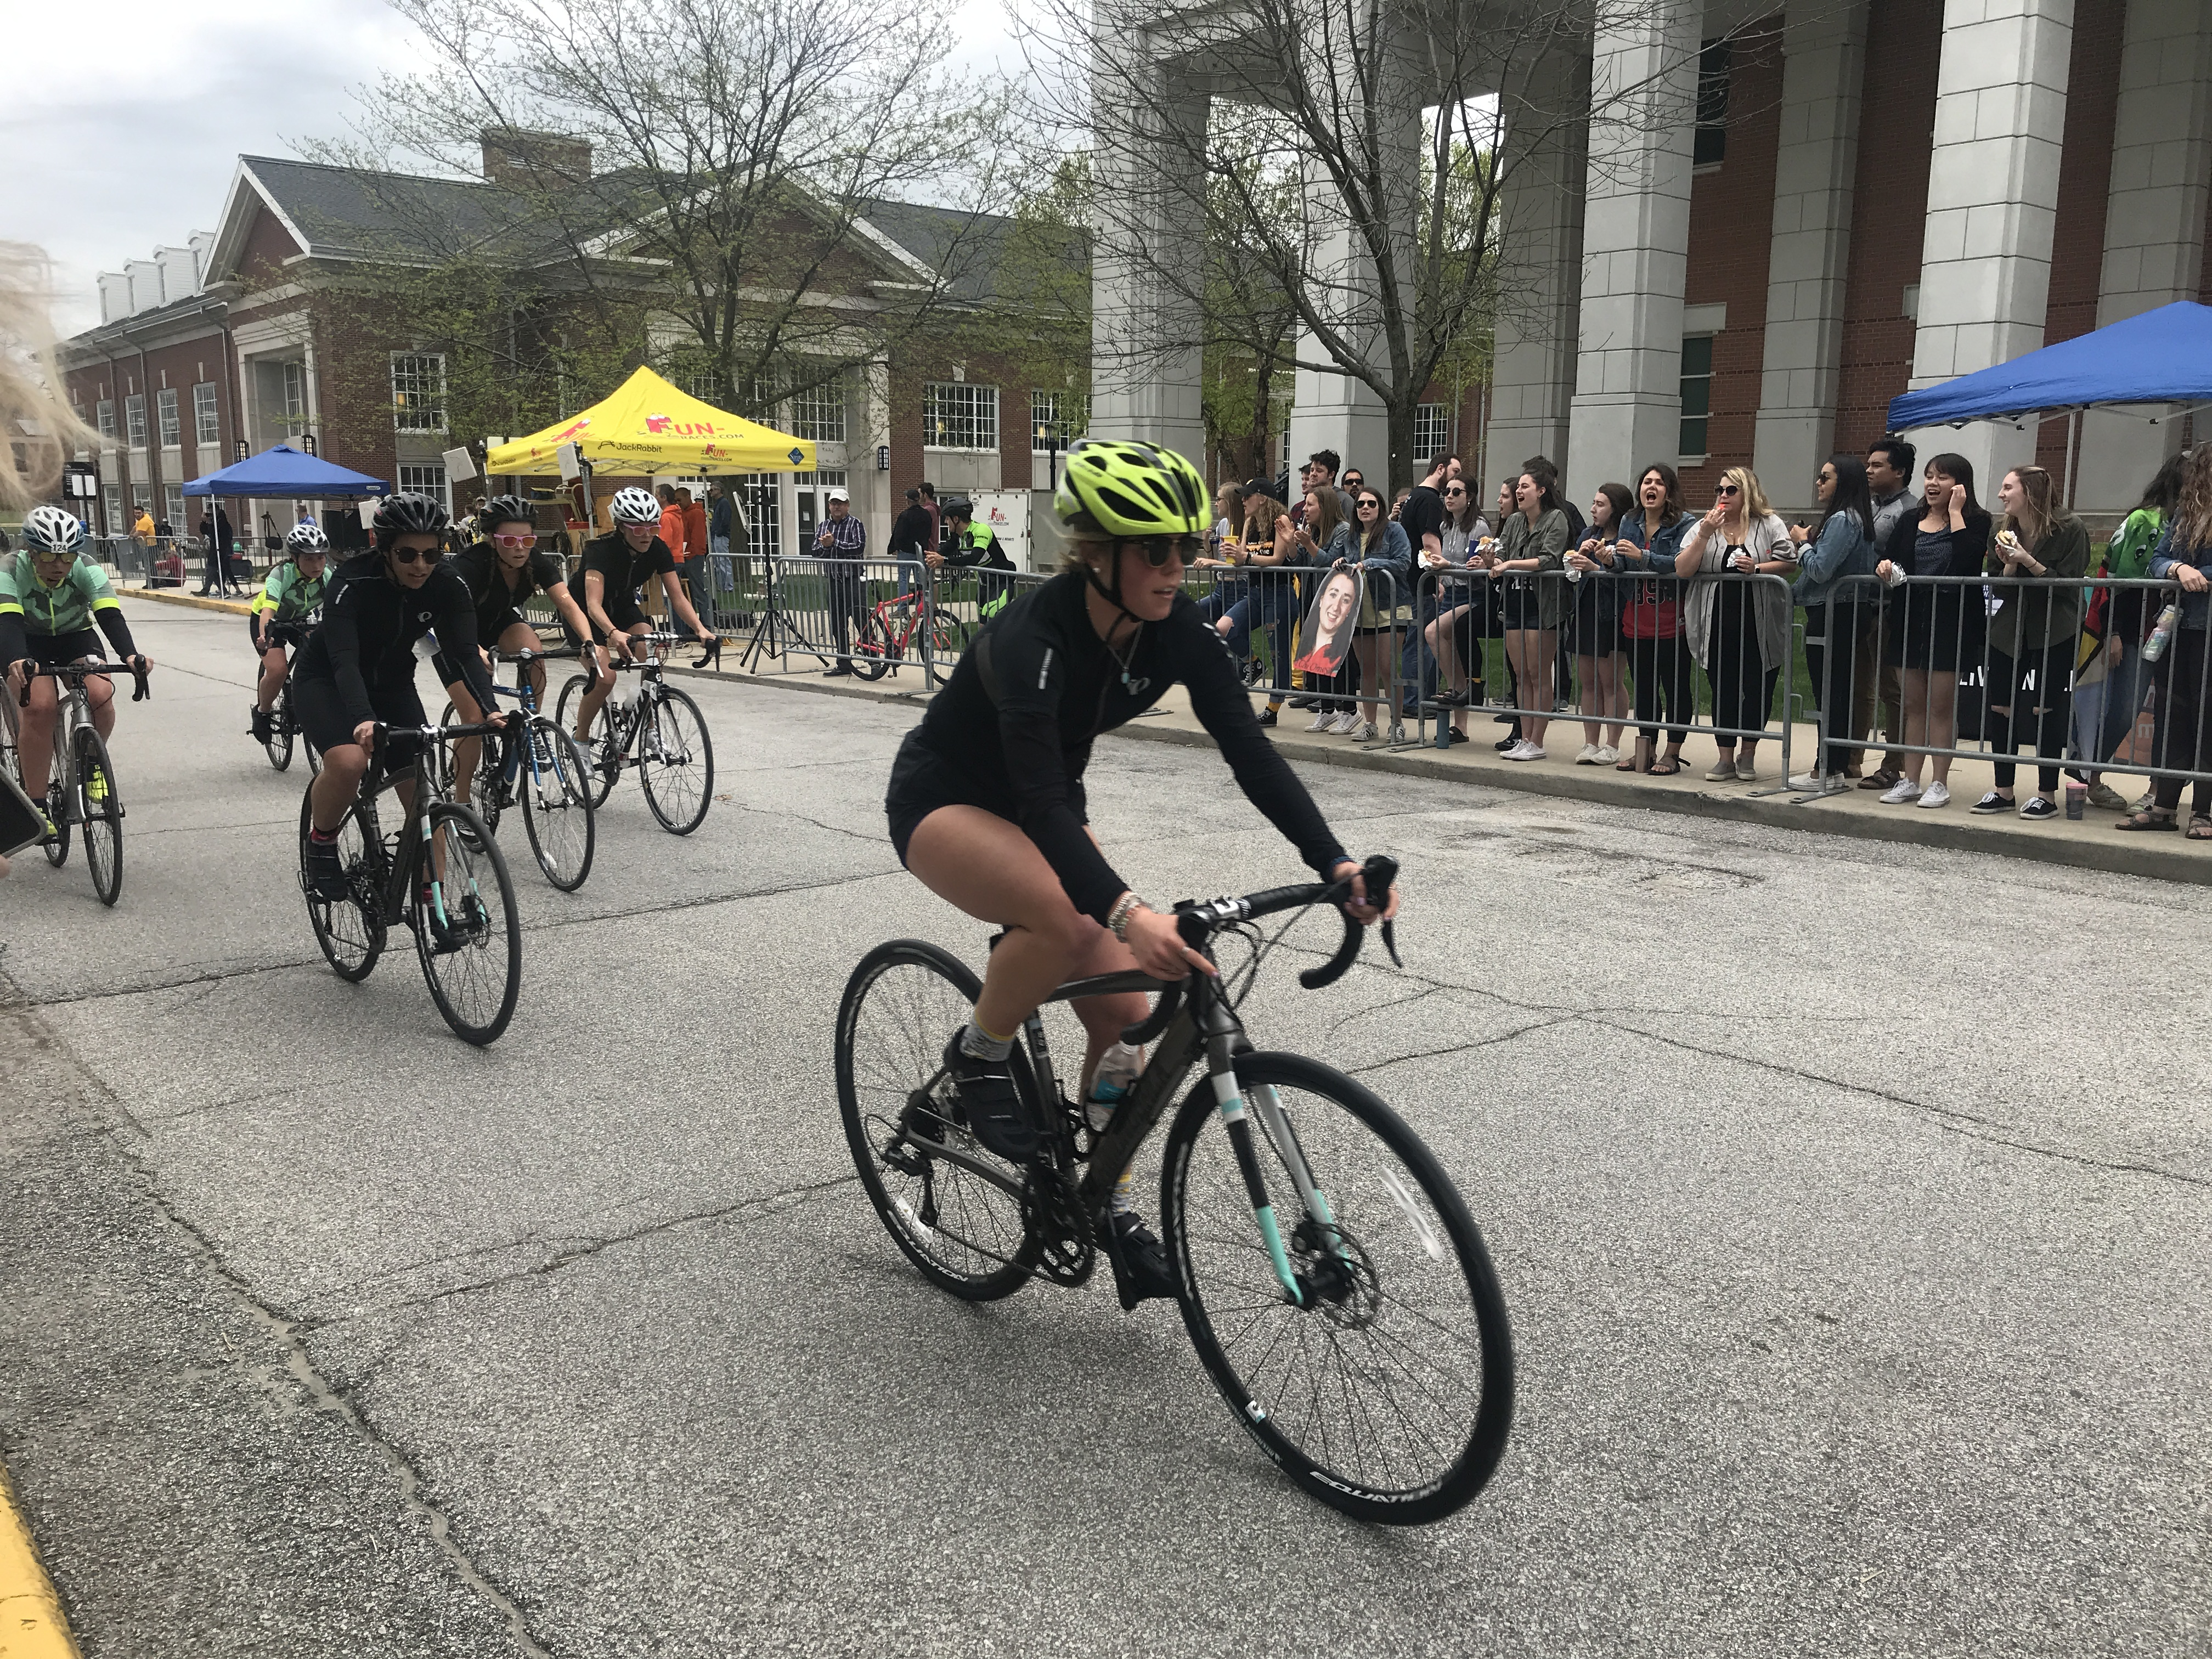 Crit 2019 (Photo by Katie Hunger)